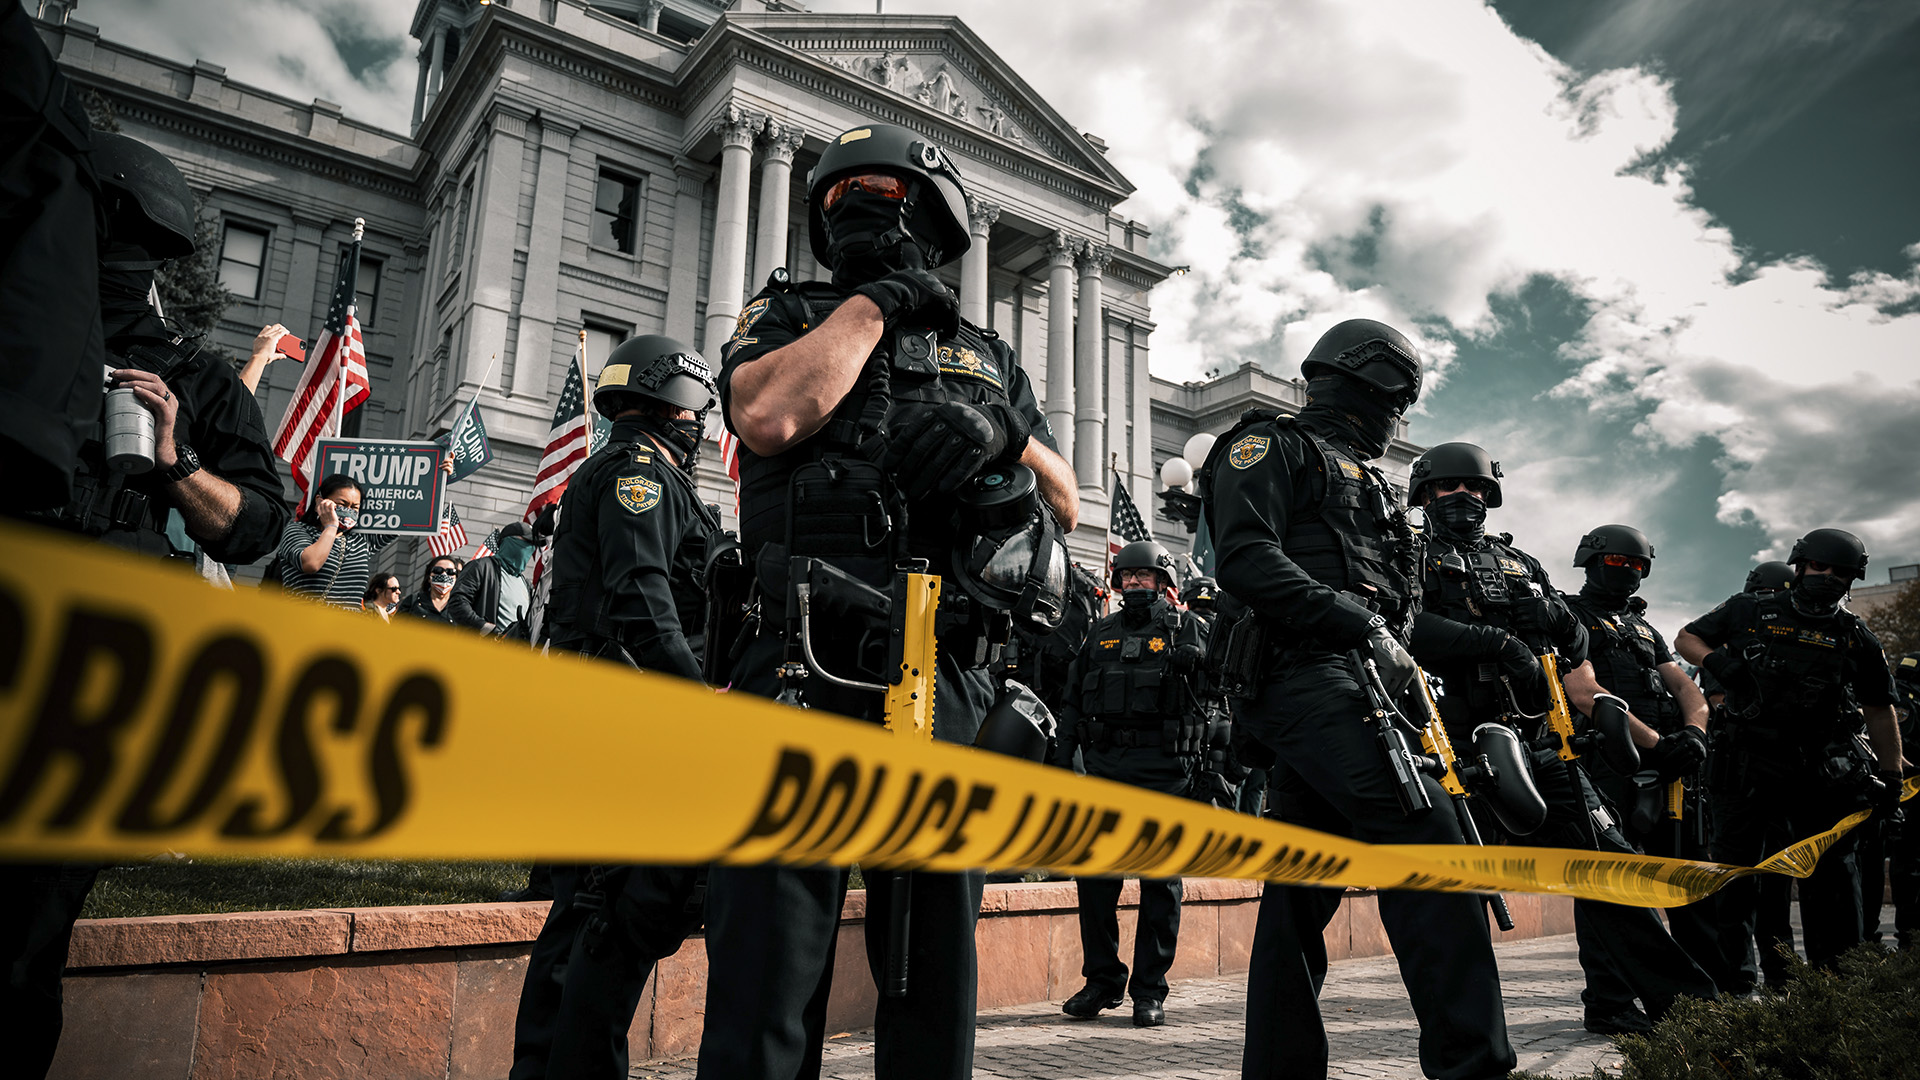 Researchers Explore Impact Of Police Action On Population Health